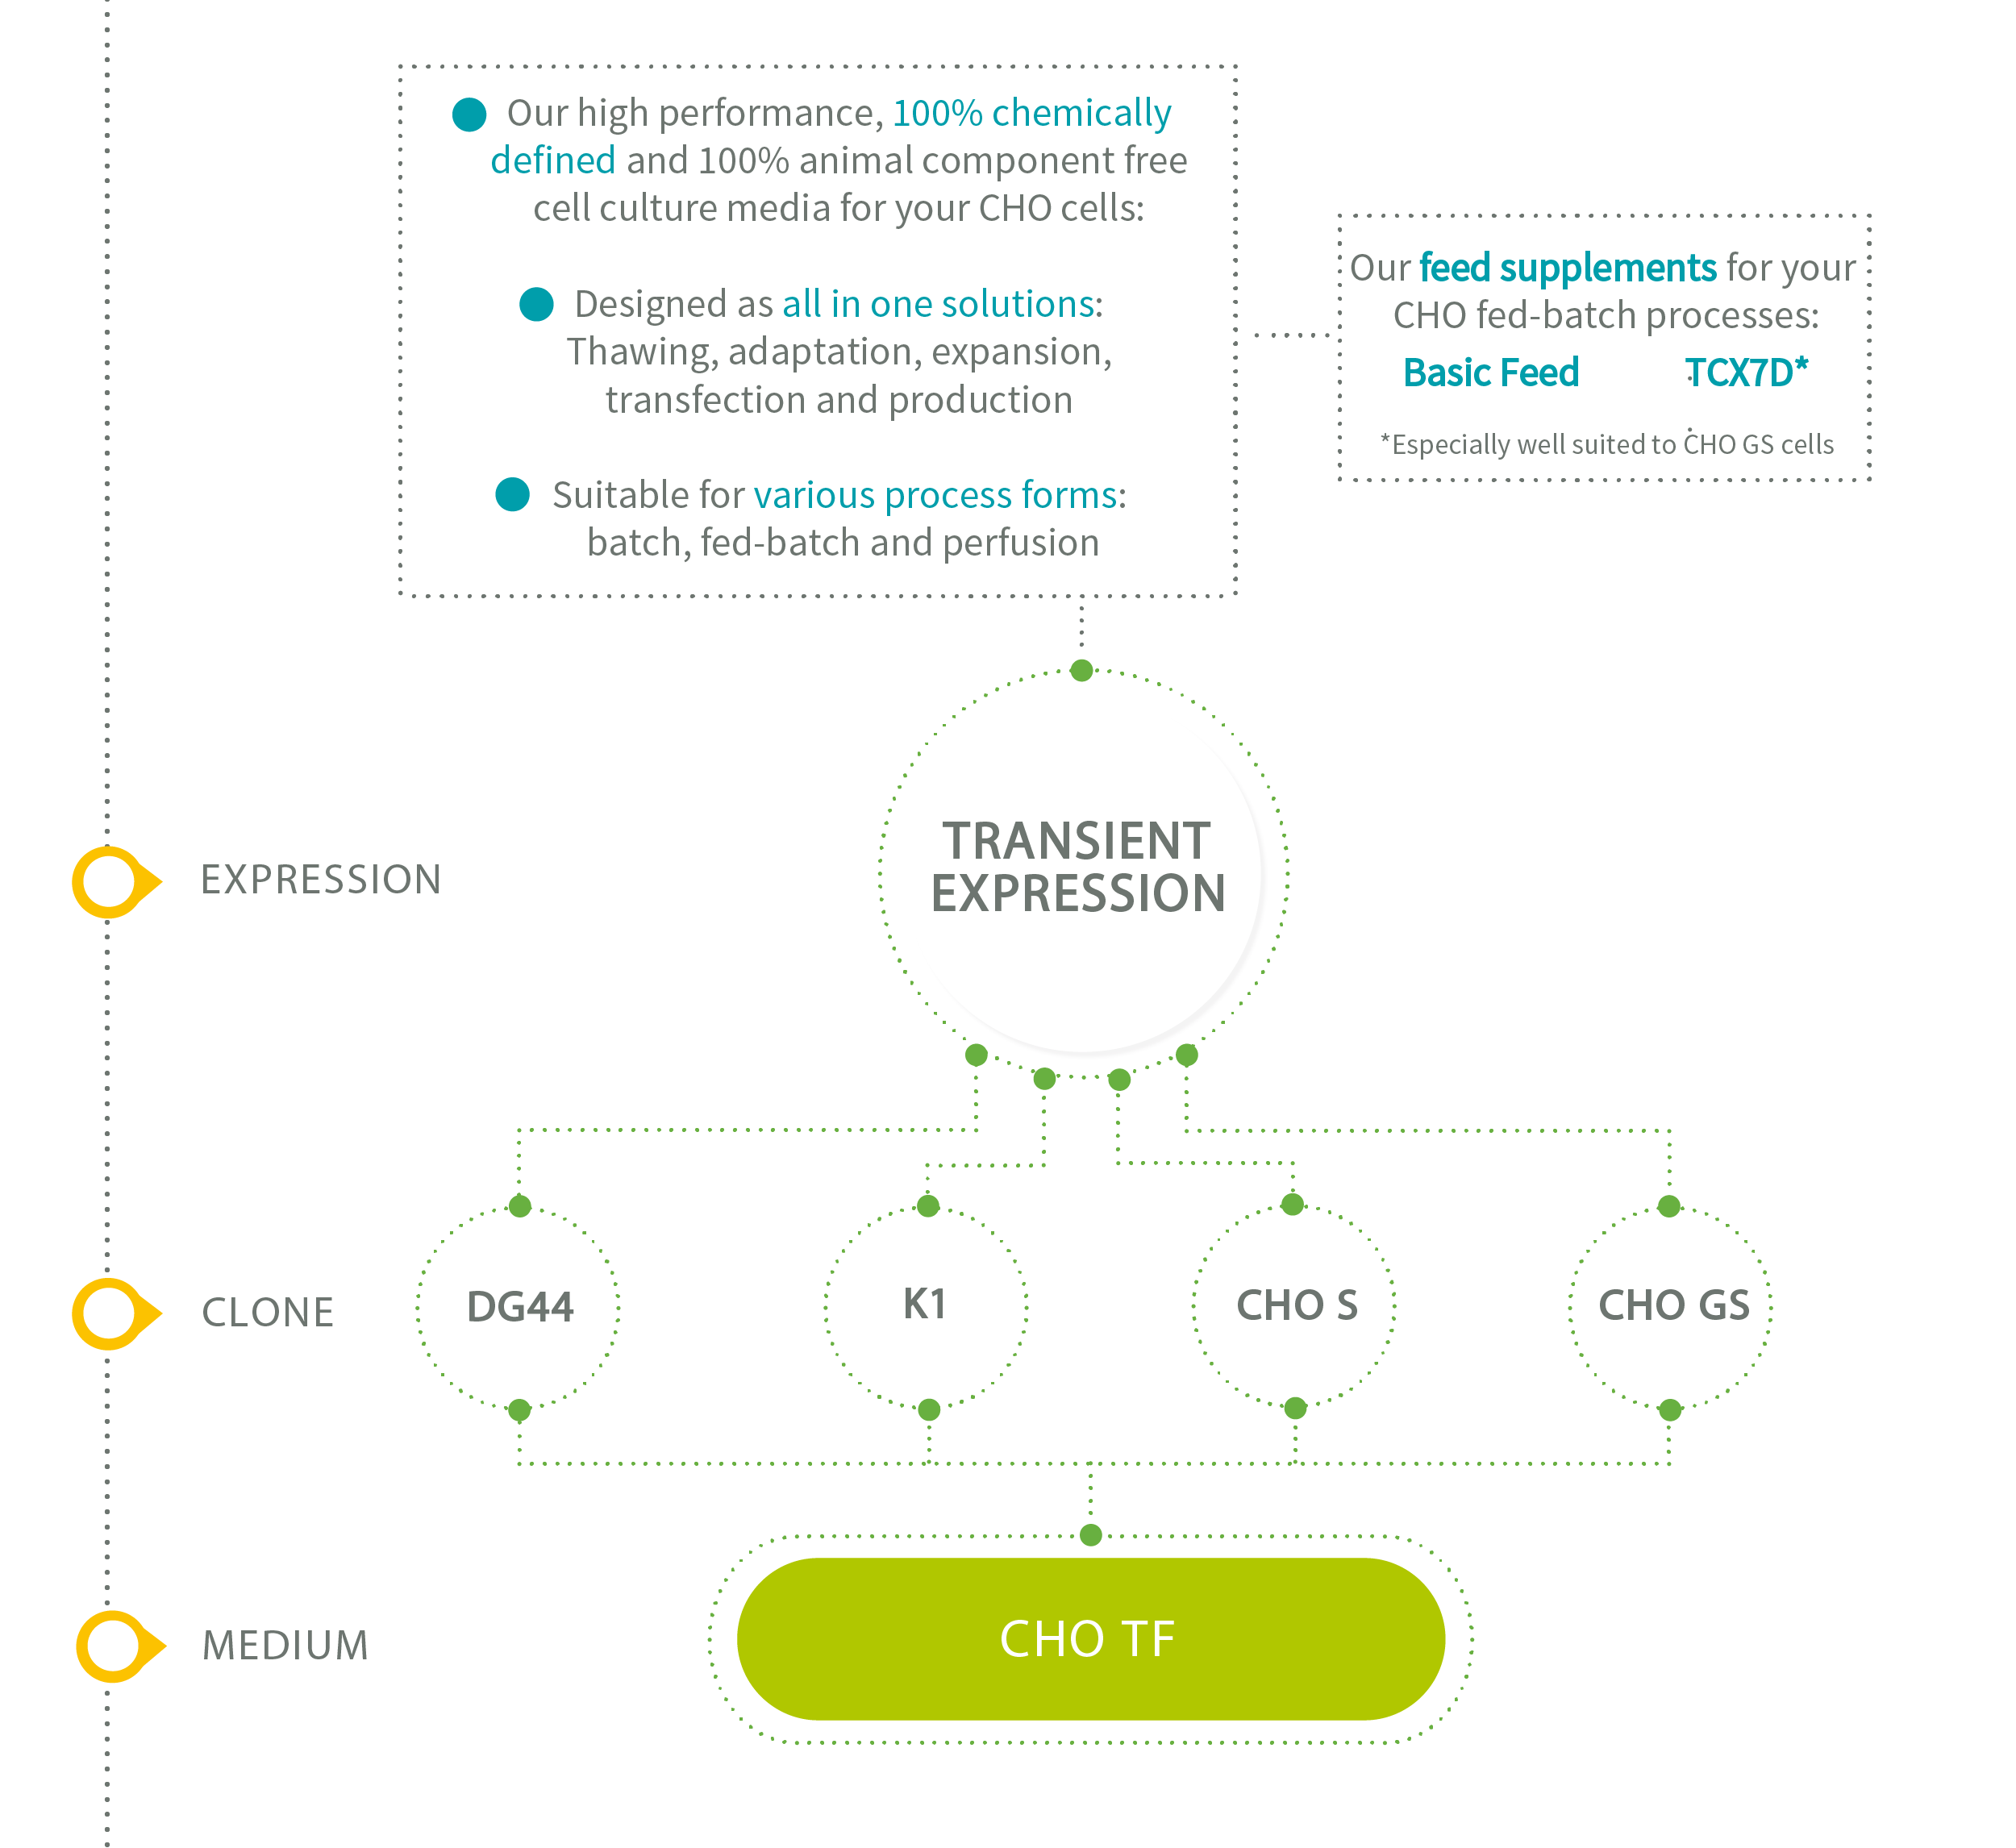 Xell CHO media for transient expression